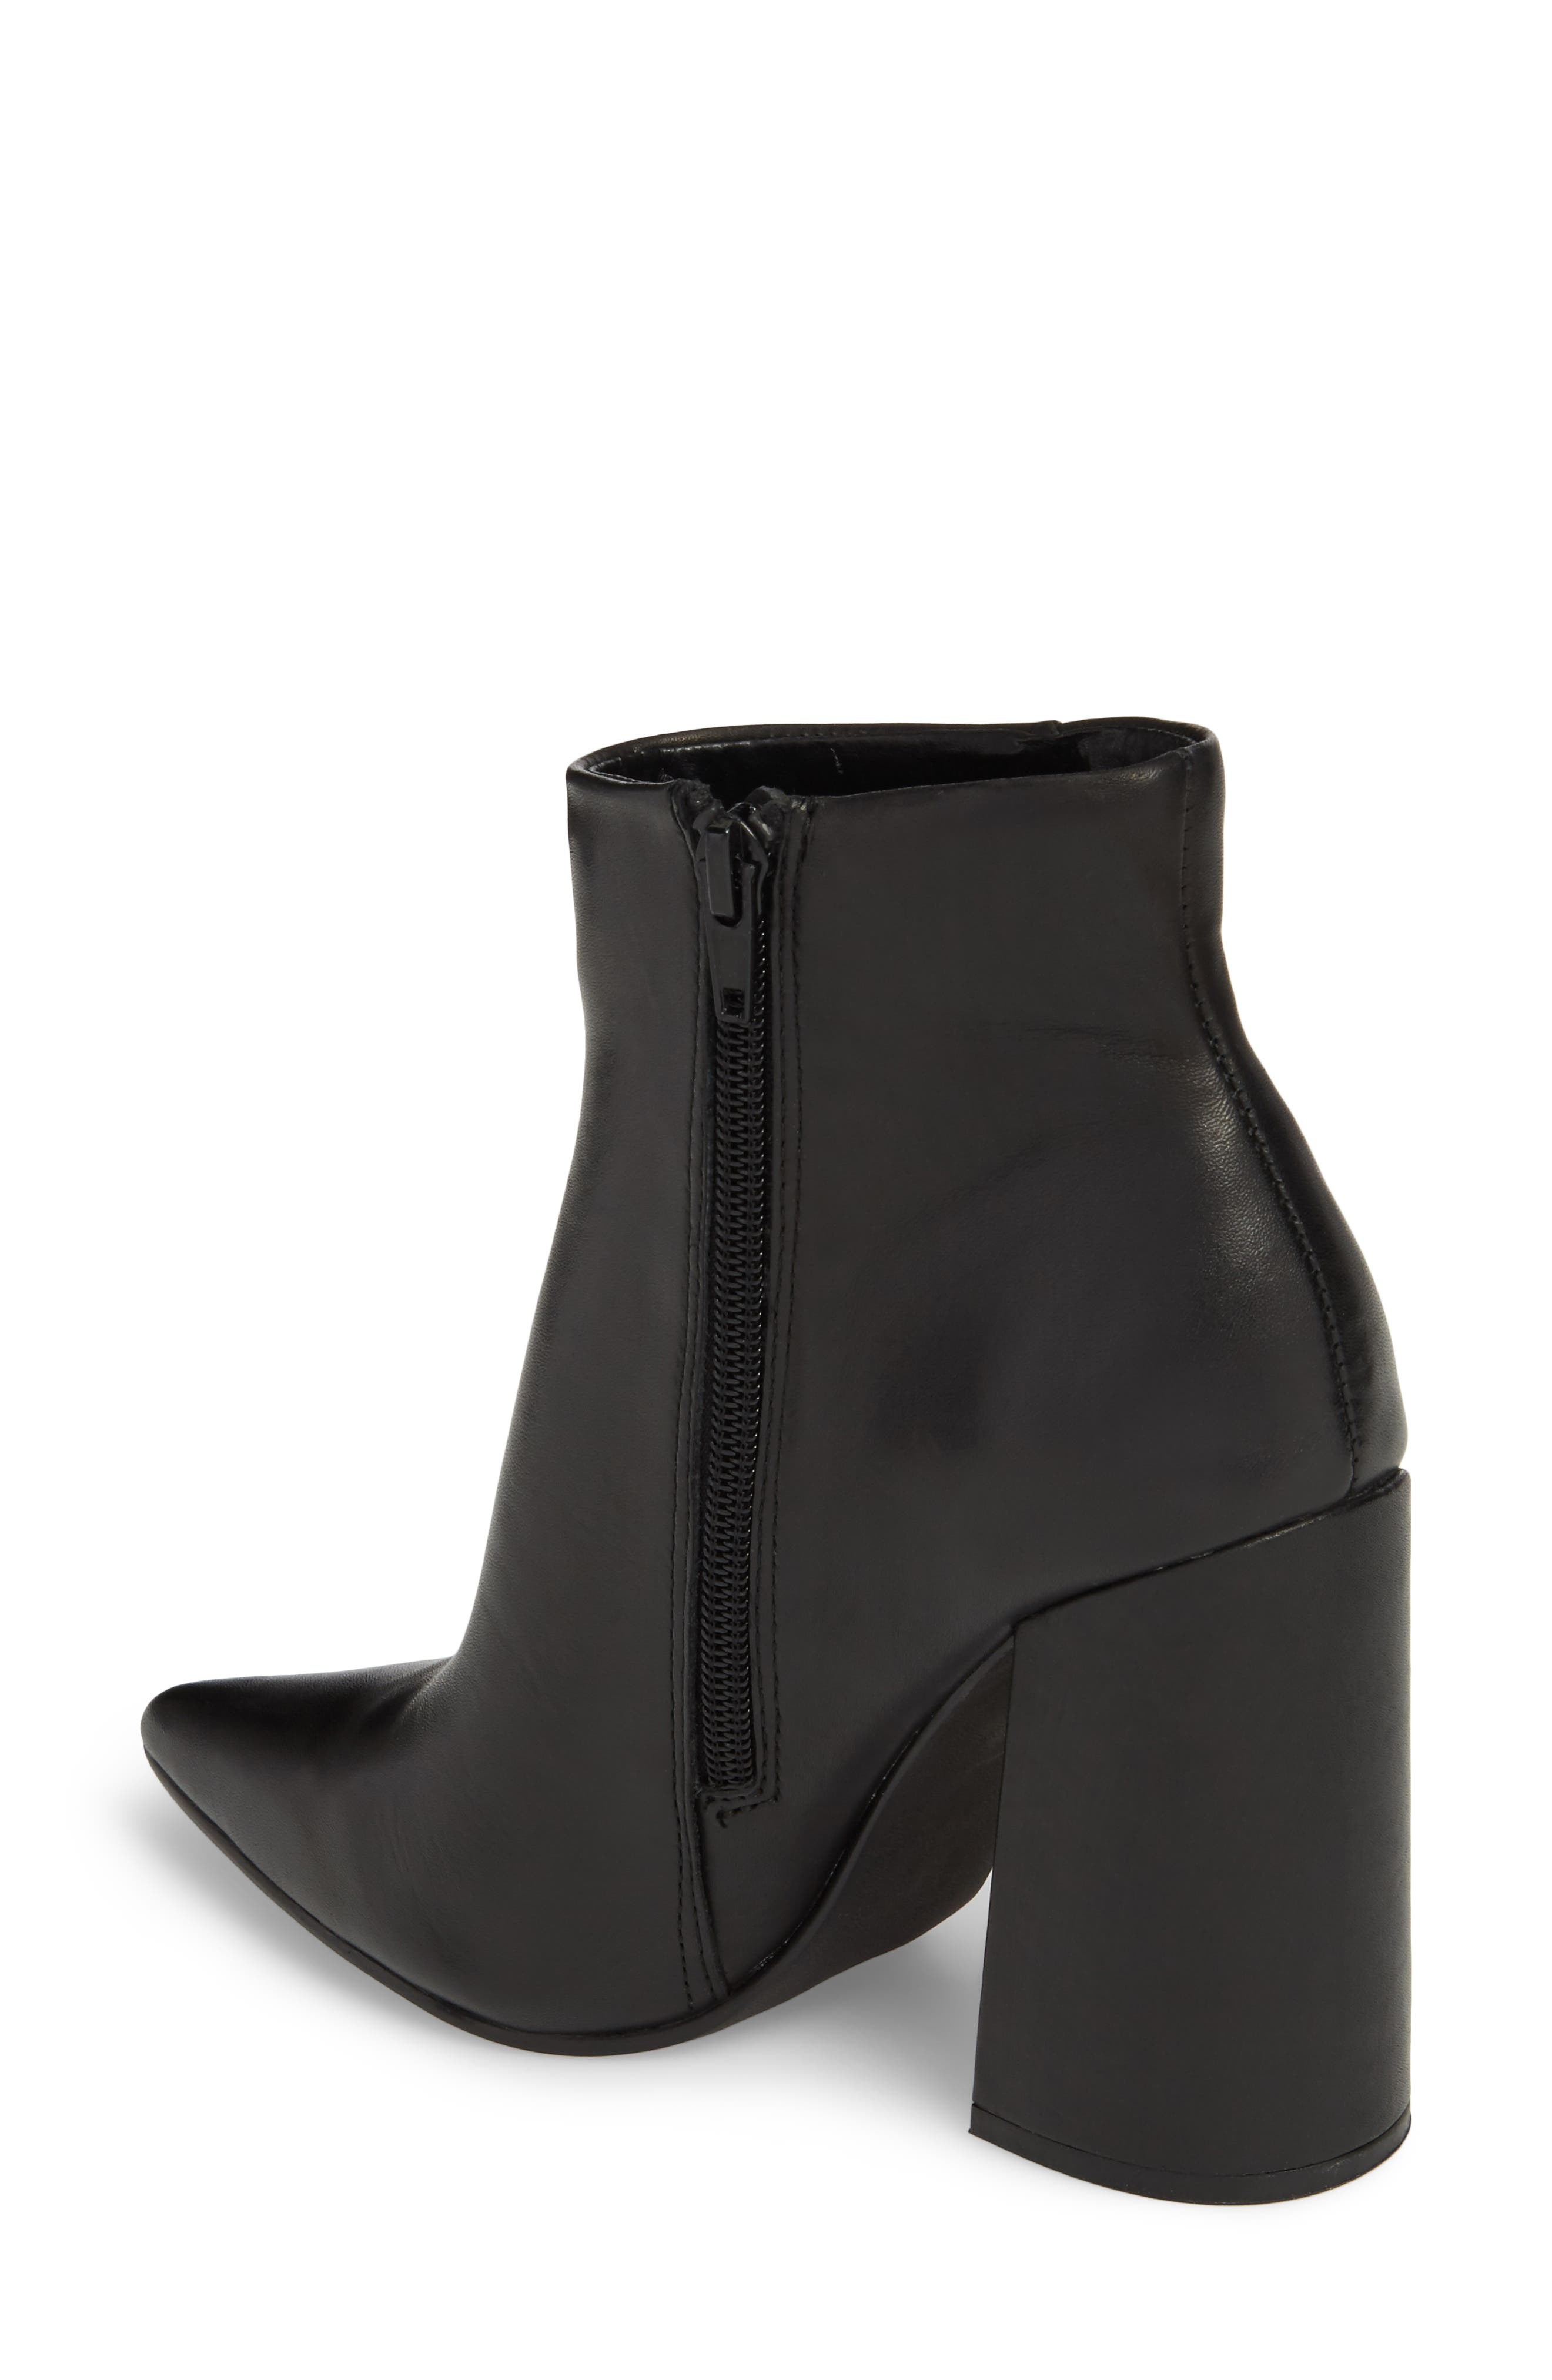 Justify Flared Heel Bootie,                             Alternate thumbnail 2, color,                             001